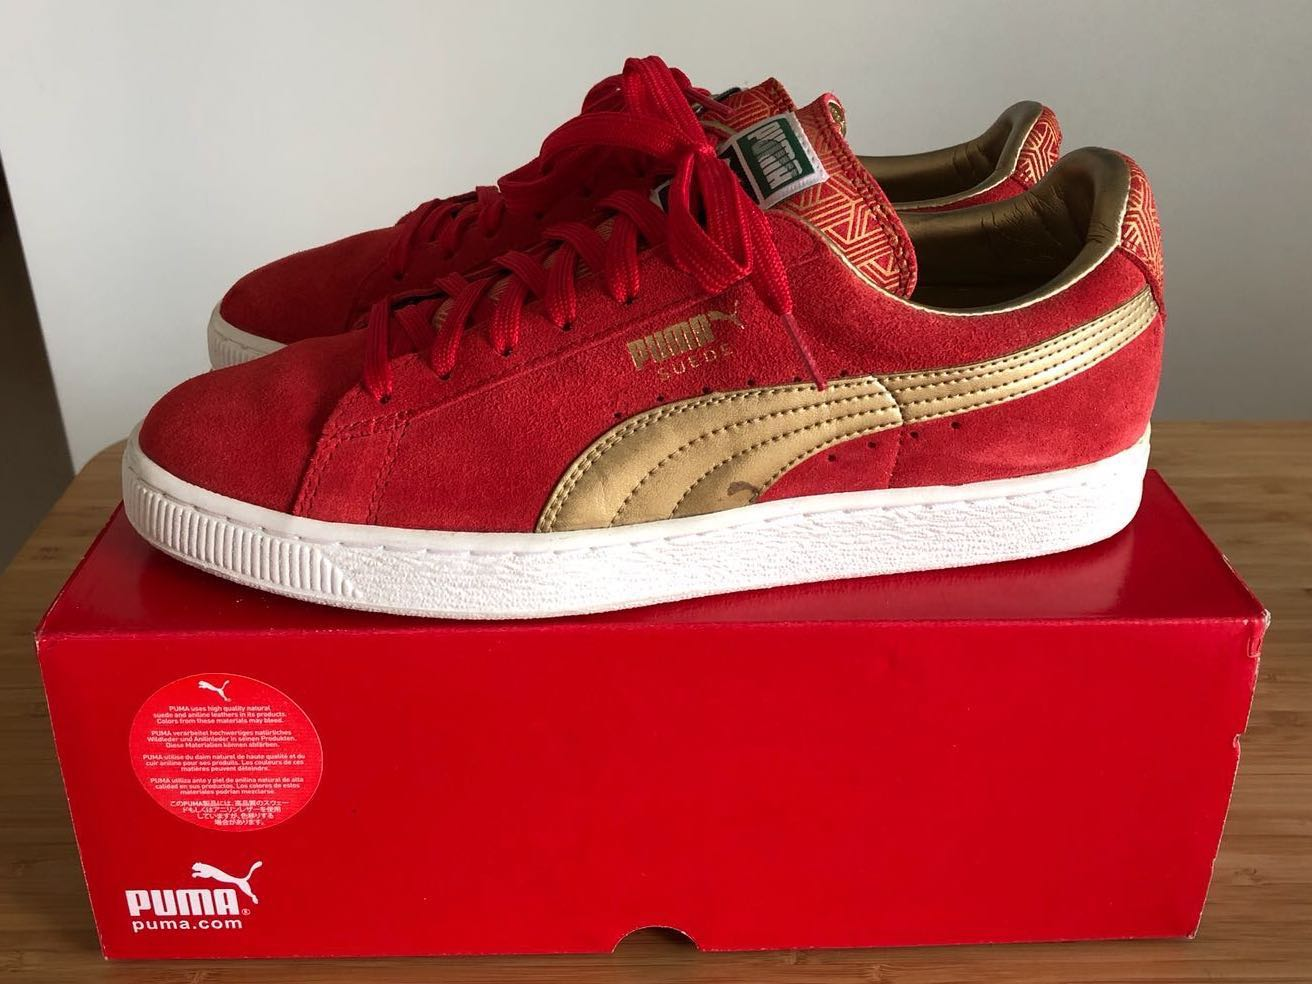 new style 19da4 f298c PUMA red suede - LIMITED EDITION!